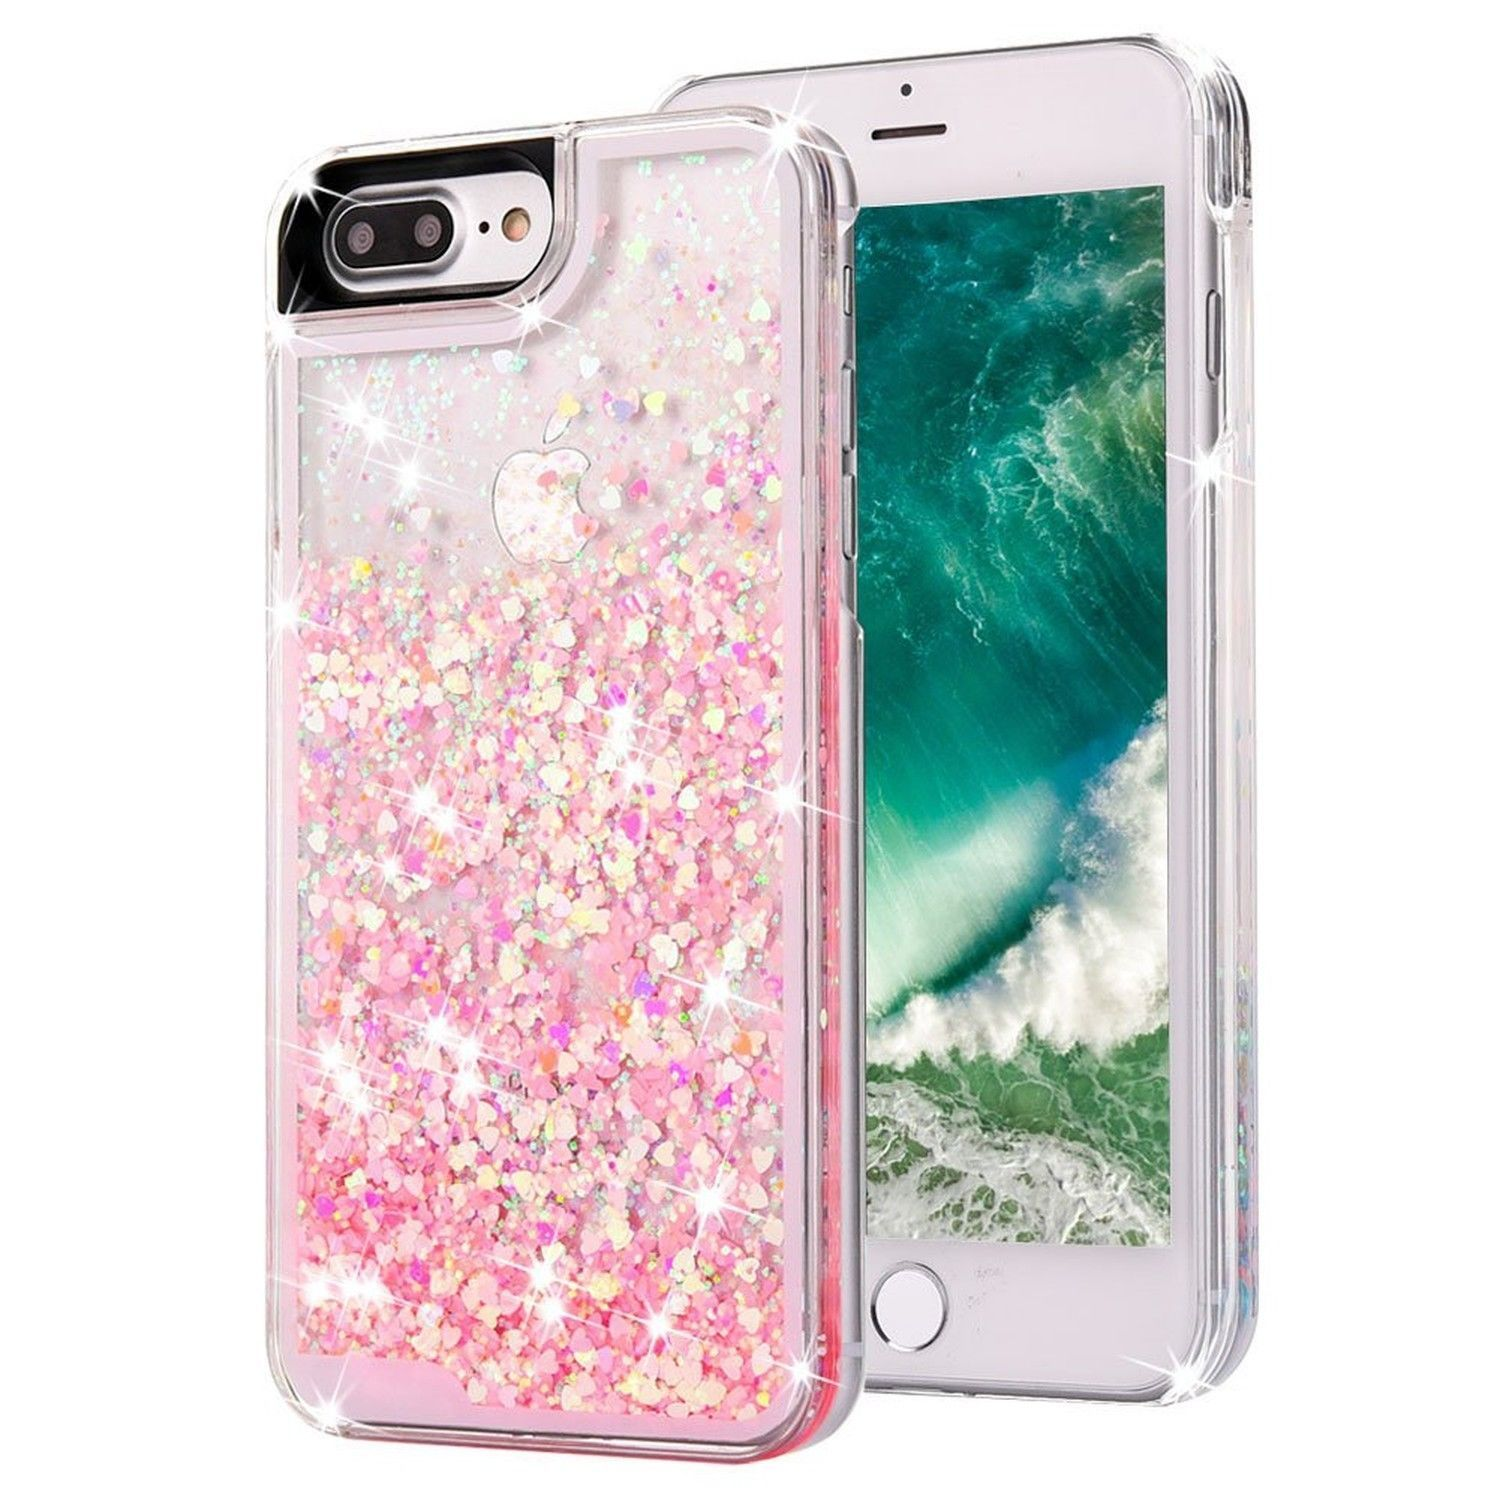 premium selection 20b88 d6dff LIQUID PINK GLITTER New Cute Bling Cell Phone Case Cover For iPHONE ...